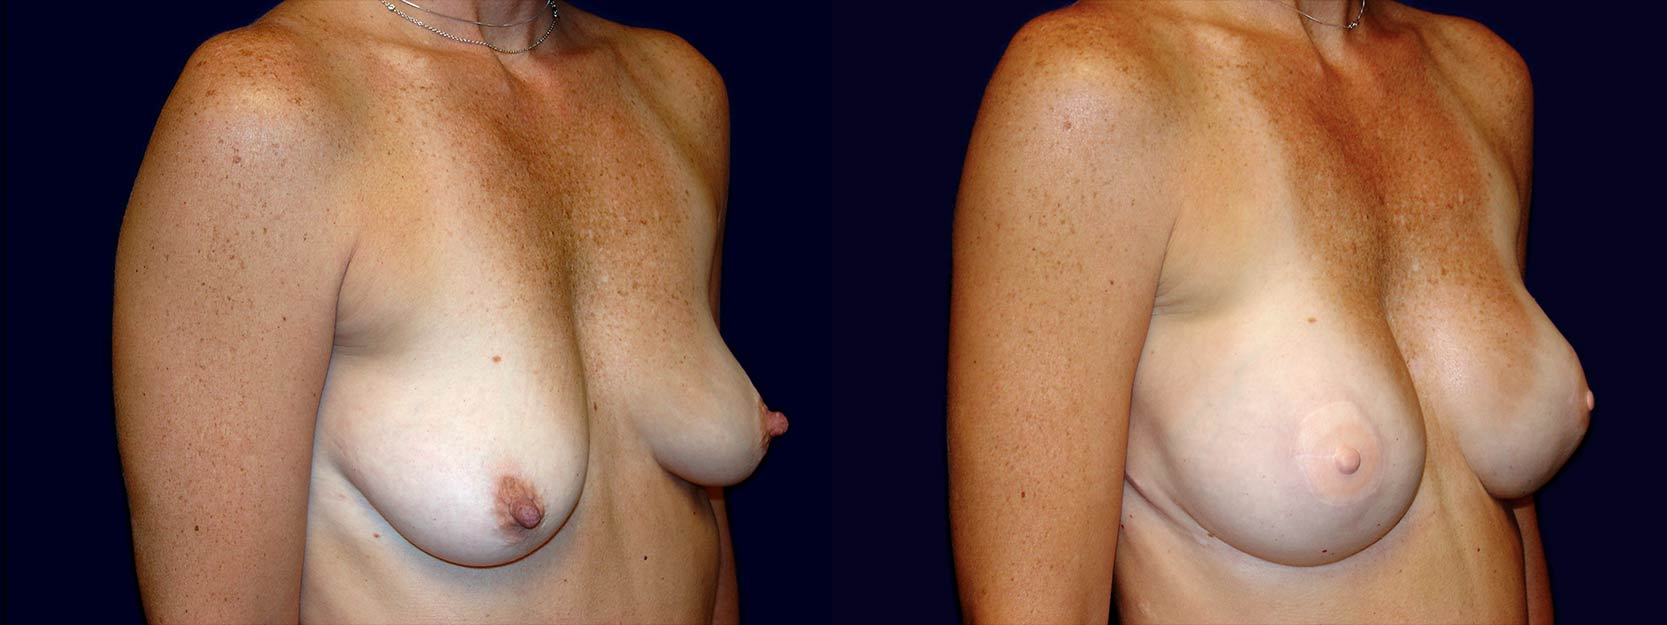 Right 3/4 View - Breast Reconstruction